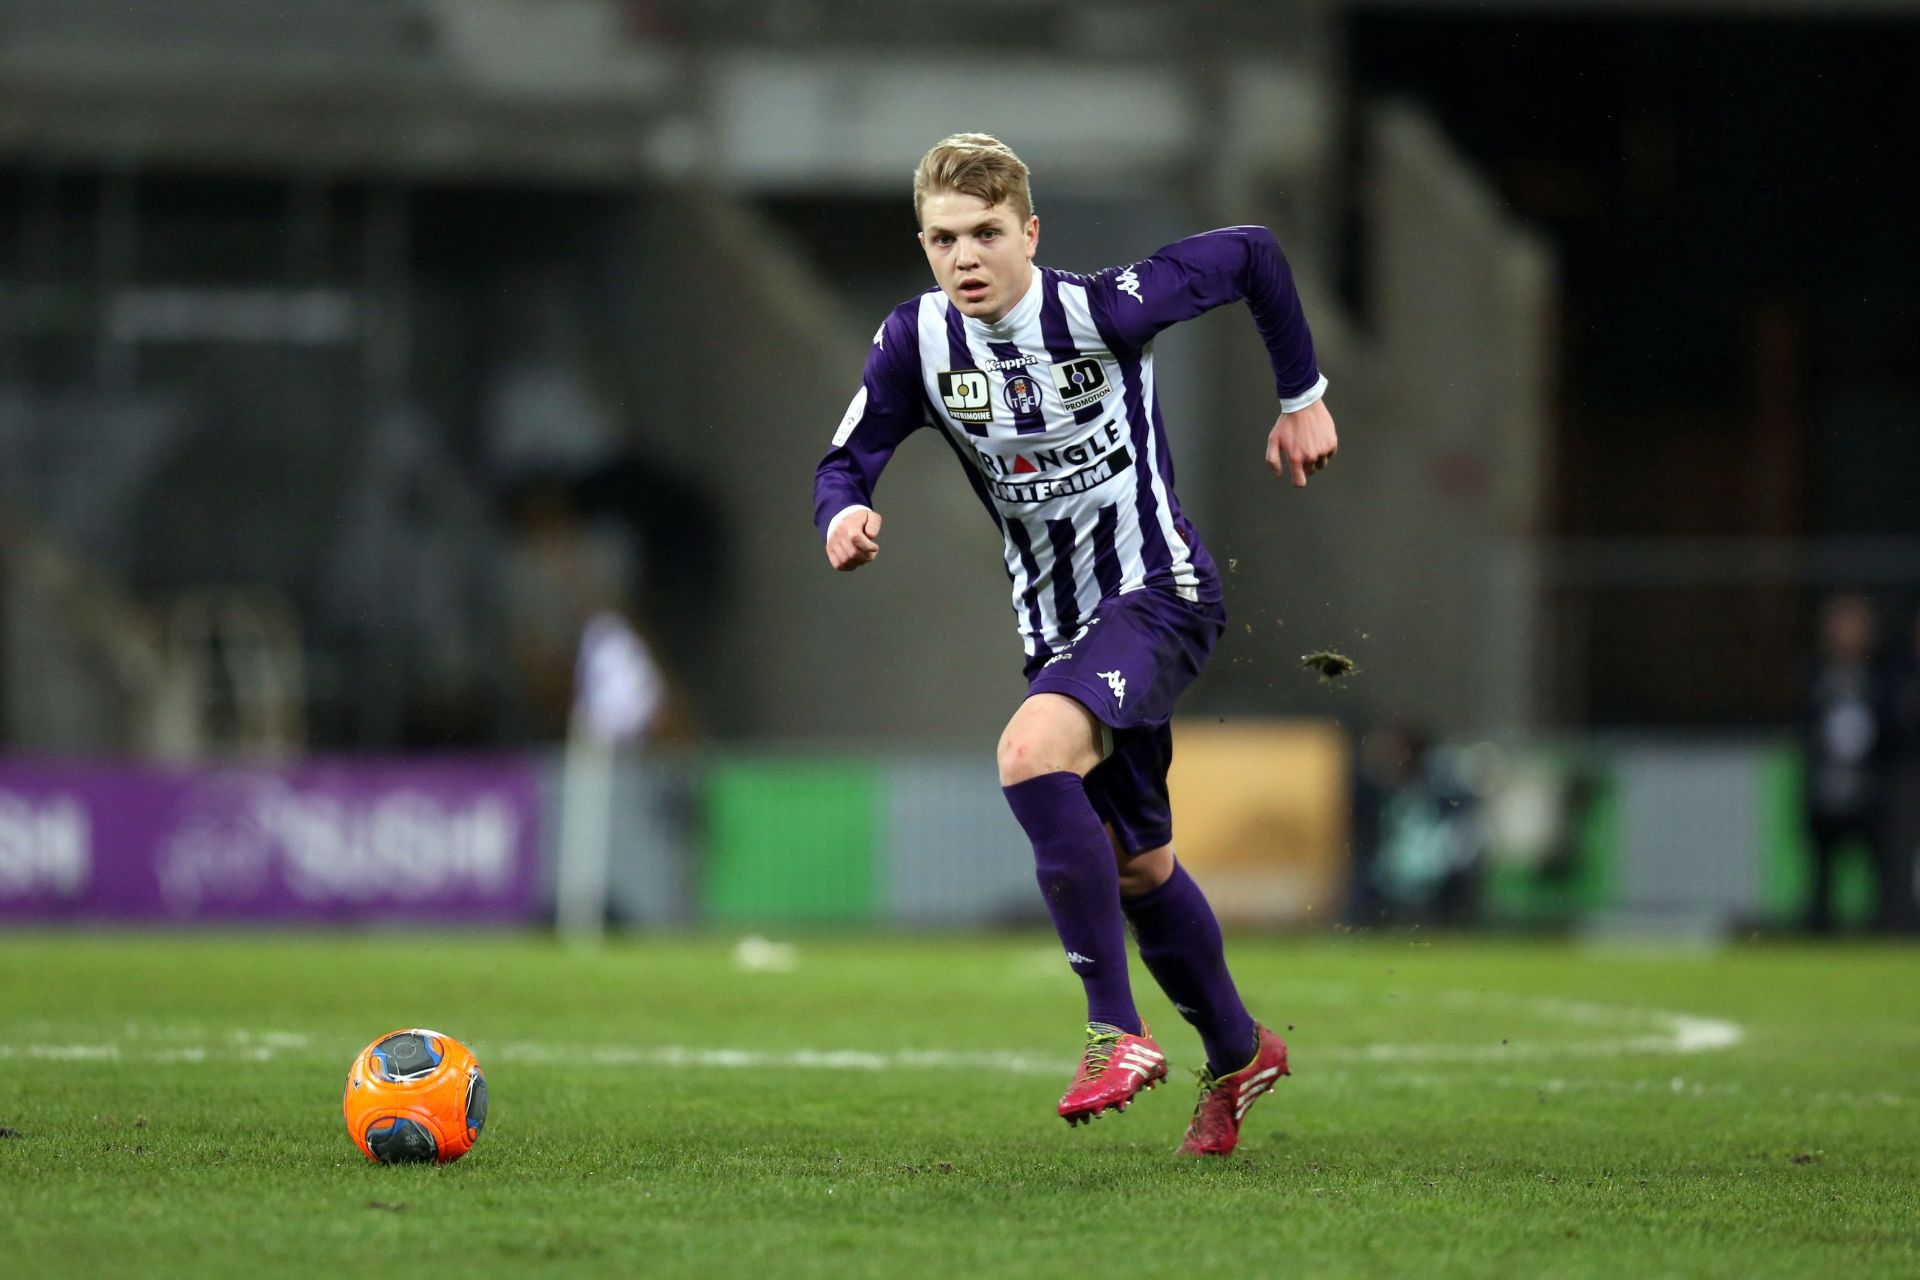 Dominik Furman - 11.02.2014 - Toulouse / Bastia - Match en Retard - 22eme journee de Ligue 1 - Photo : Manuel Blondeau / Icon Sport LIGA WLOSKA PILKA NOZNA SEZON 2014/2015 FOT. ICON SPORT/NEWSPIX.PL POLAND ONLY!!! --- Newspix.pl *** Local Caption *** www.newspix.pl mail us: info@newspix.pl call us: 0048 022 23 22 222 --- Polish Picture Agency by Ringier Axel Springer Poland